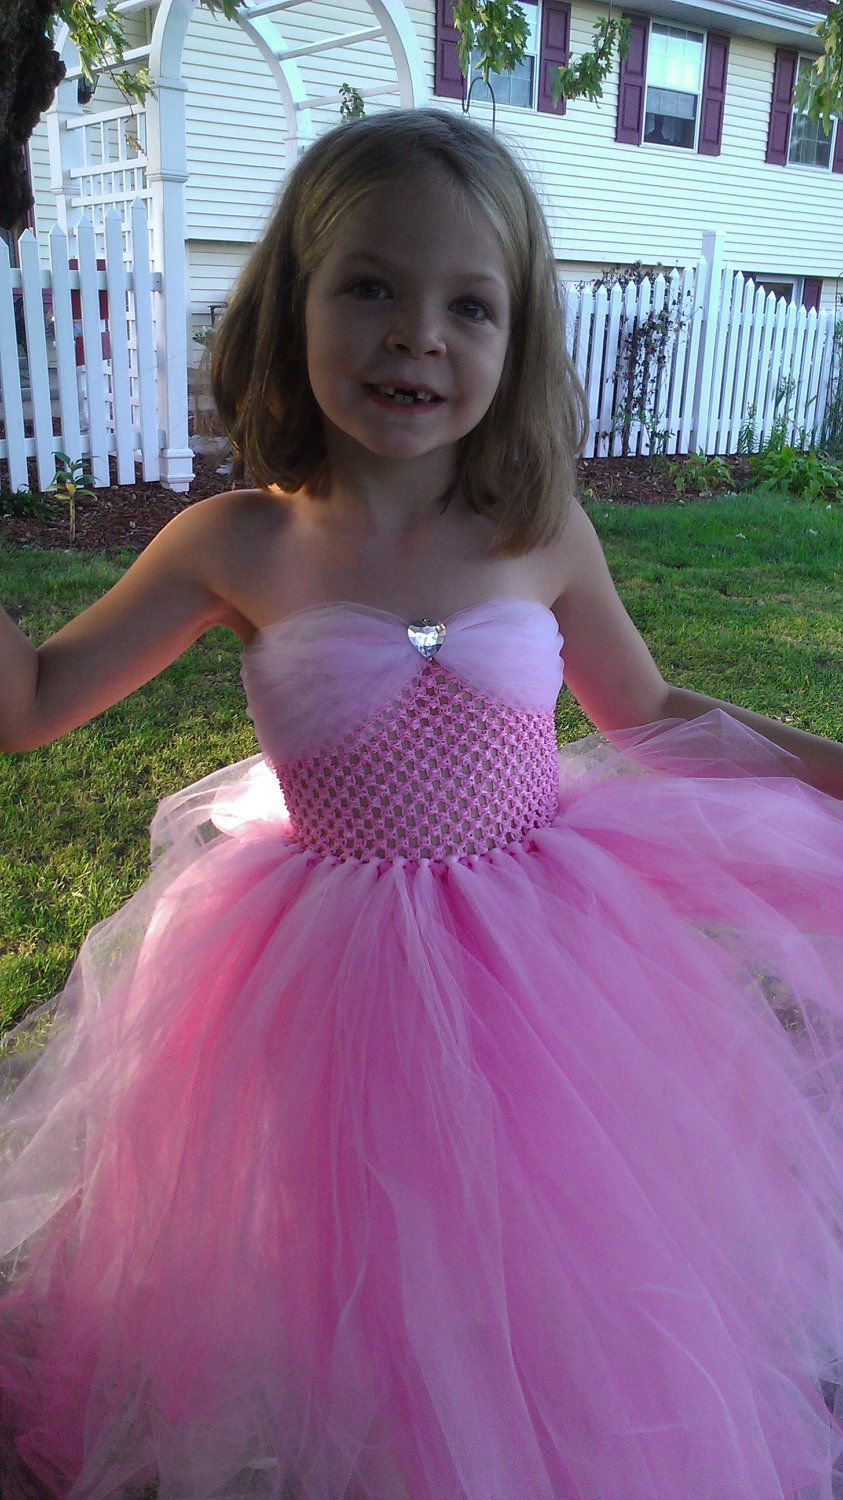 Sleeping+Beauty+tutu+dress+by+tiger0459+on+Etsy,+$40.00 | Lucy ...